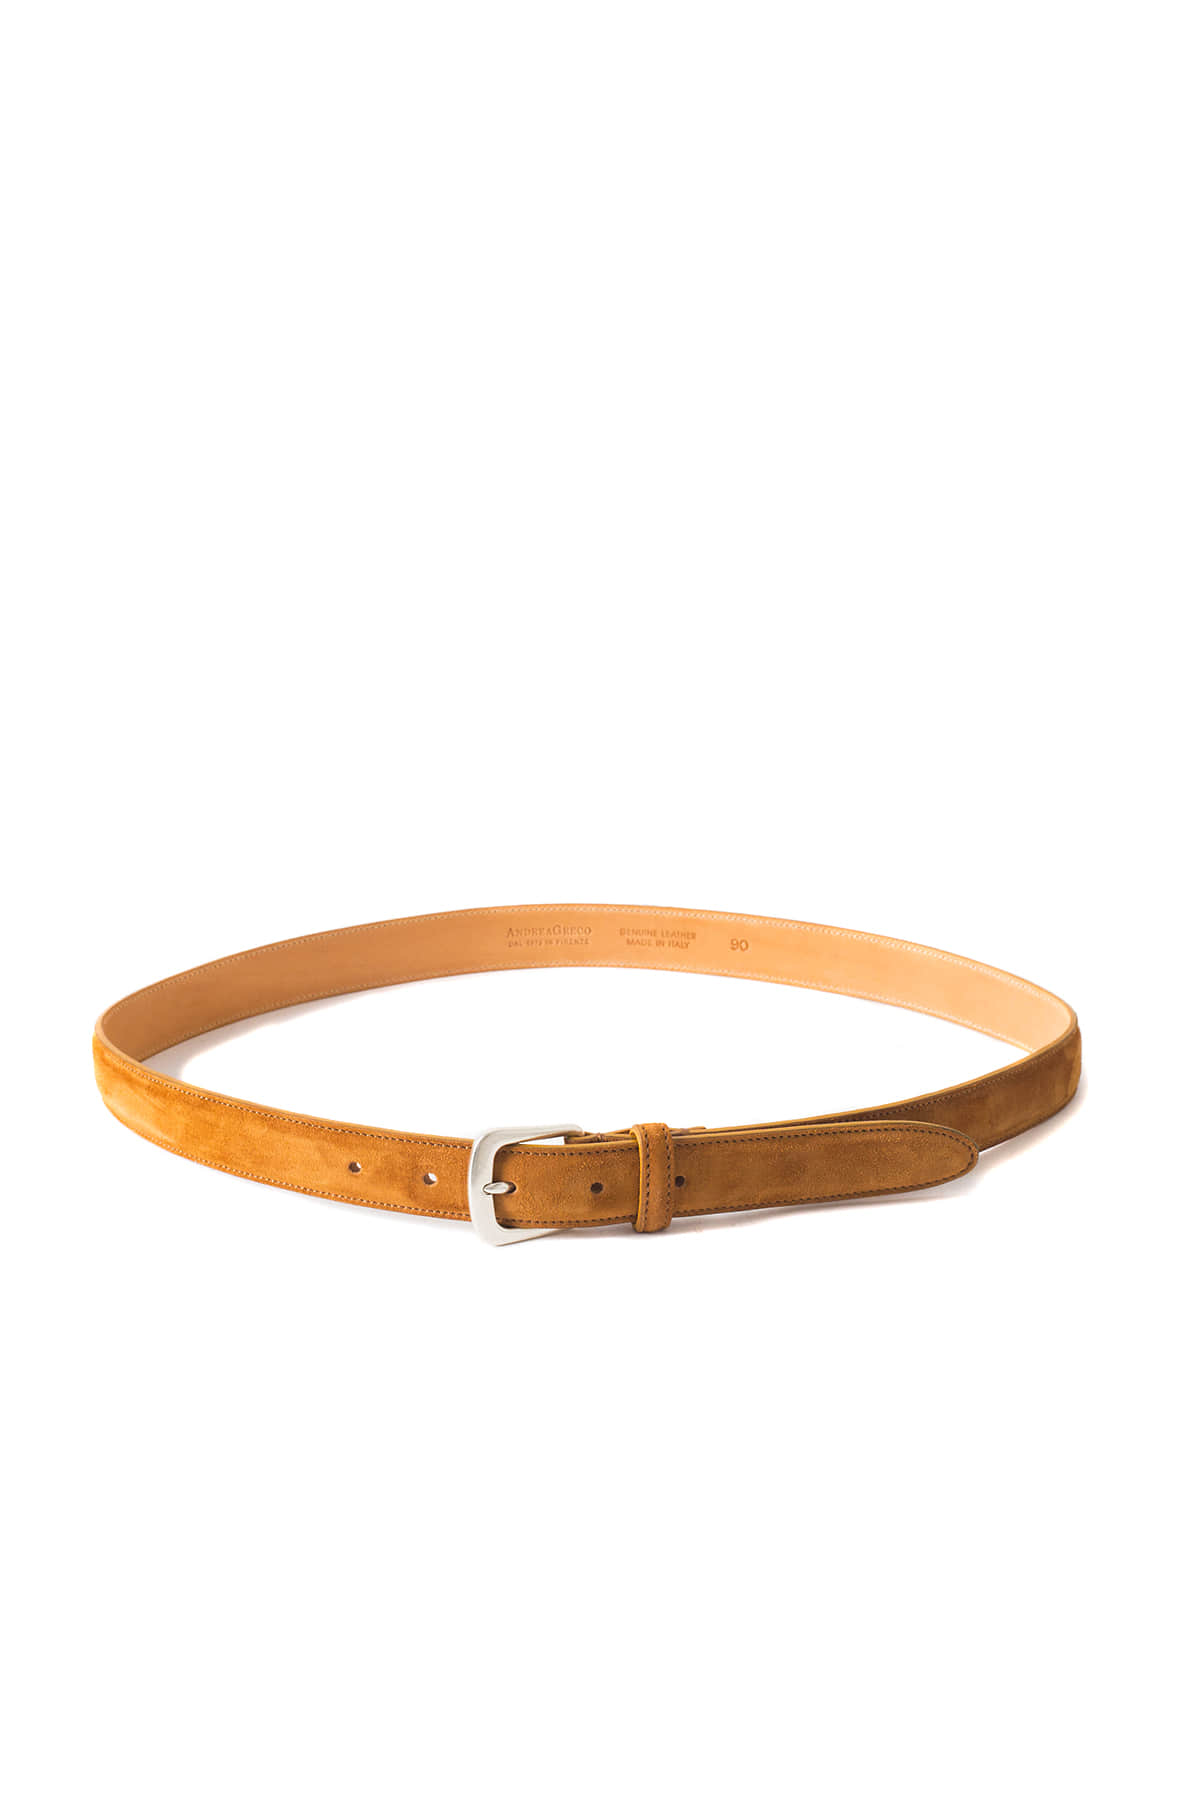 ANDREA GRECO : Cachemere Suede Calf Leather Belt (Coffee)